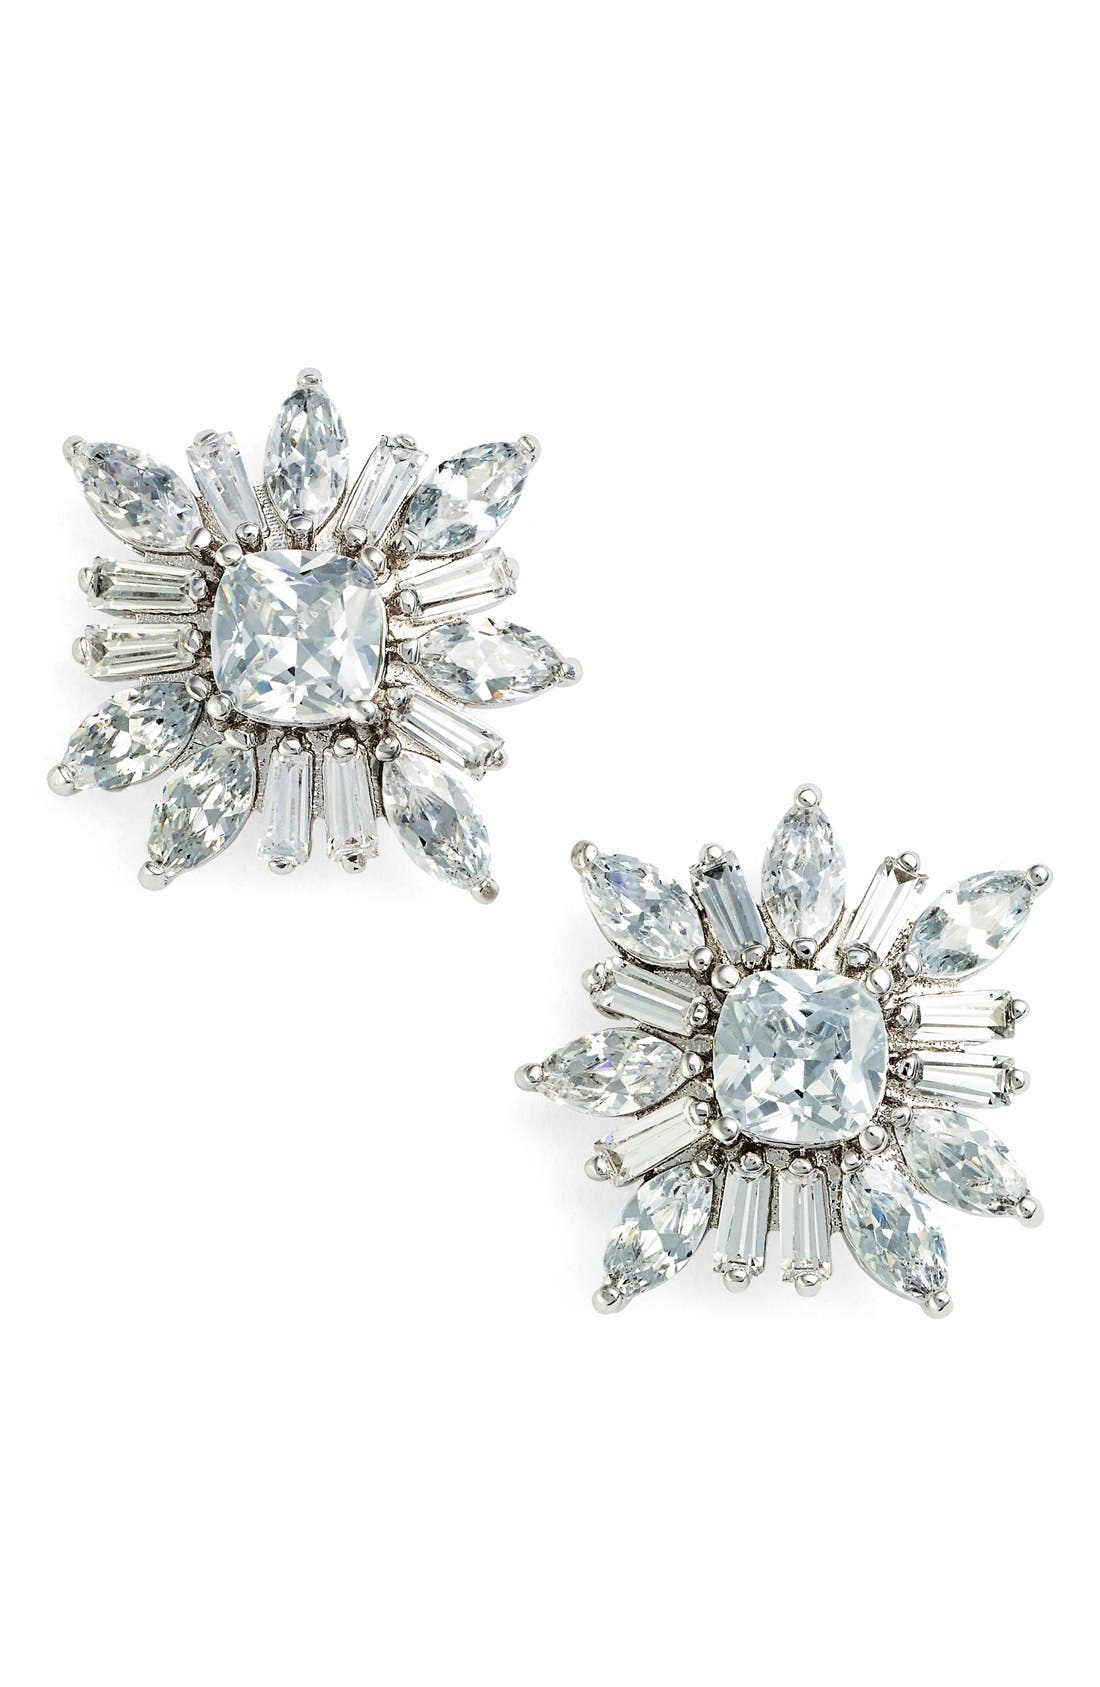 Main Image - CZ by Kenneth Jay Lane 'Starburst' Cubic Zirconia Stud Earrings